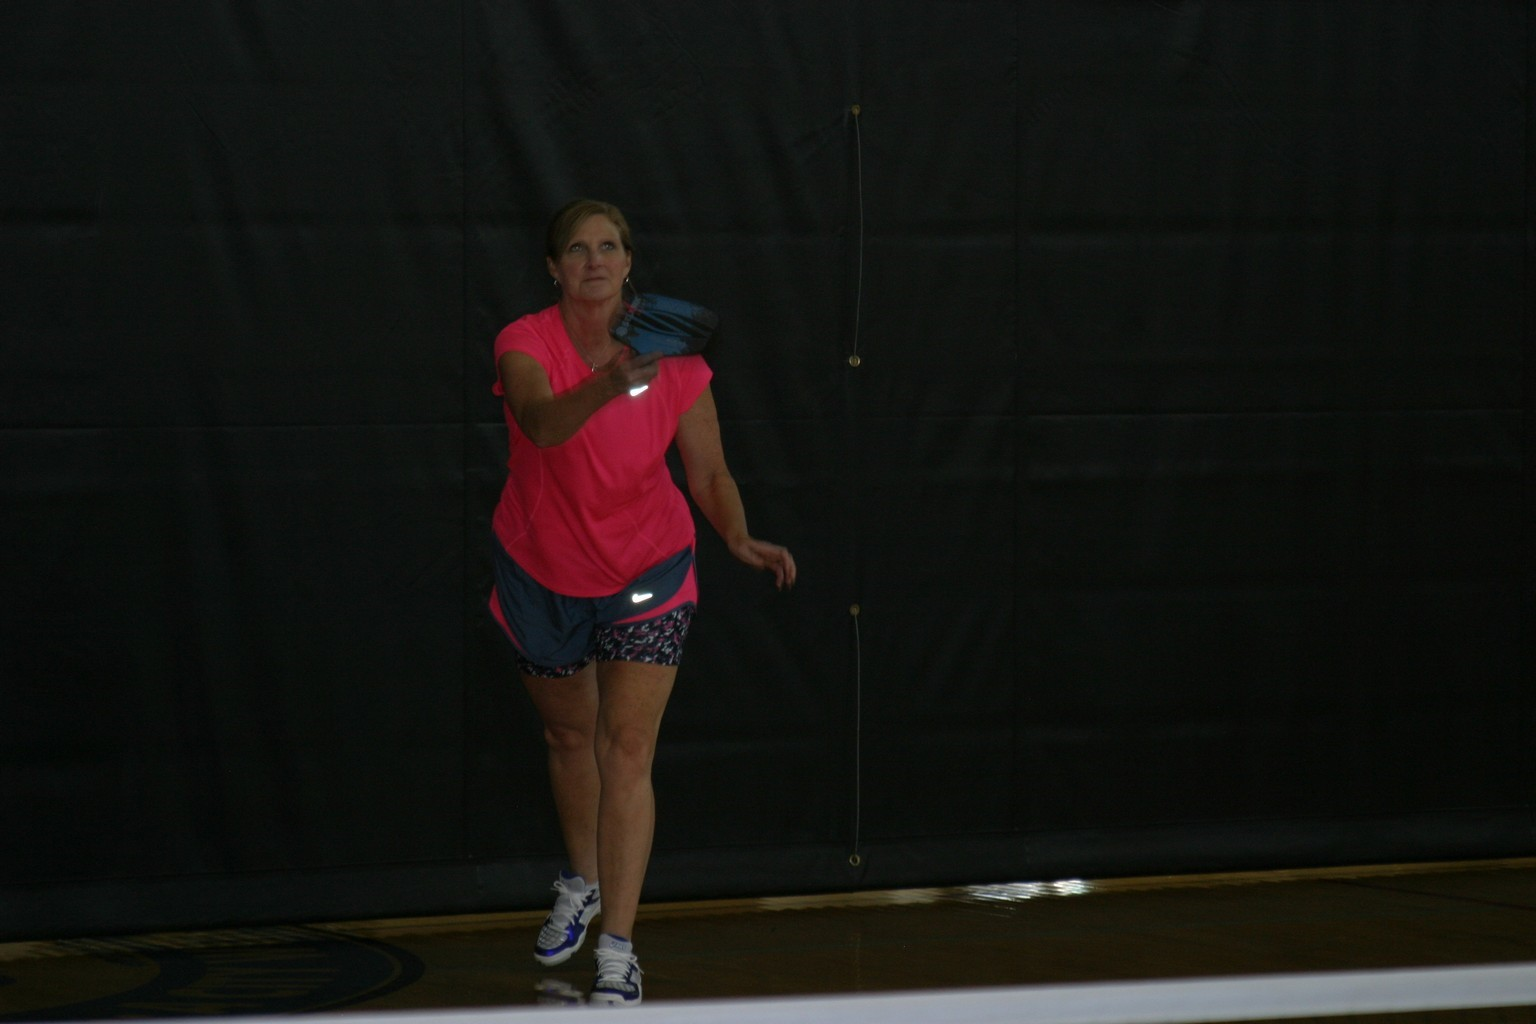 trussville pickleball, birmingham pickleball, pickleball, family pickleball, trussville civic center, 2016 Senior Olympics